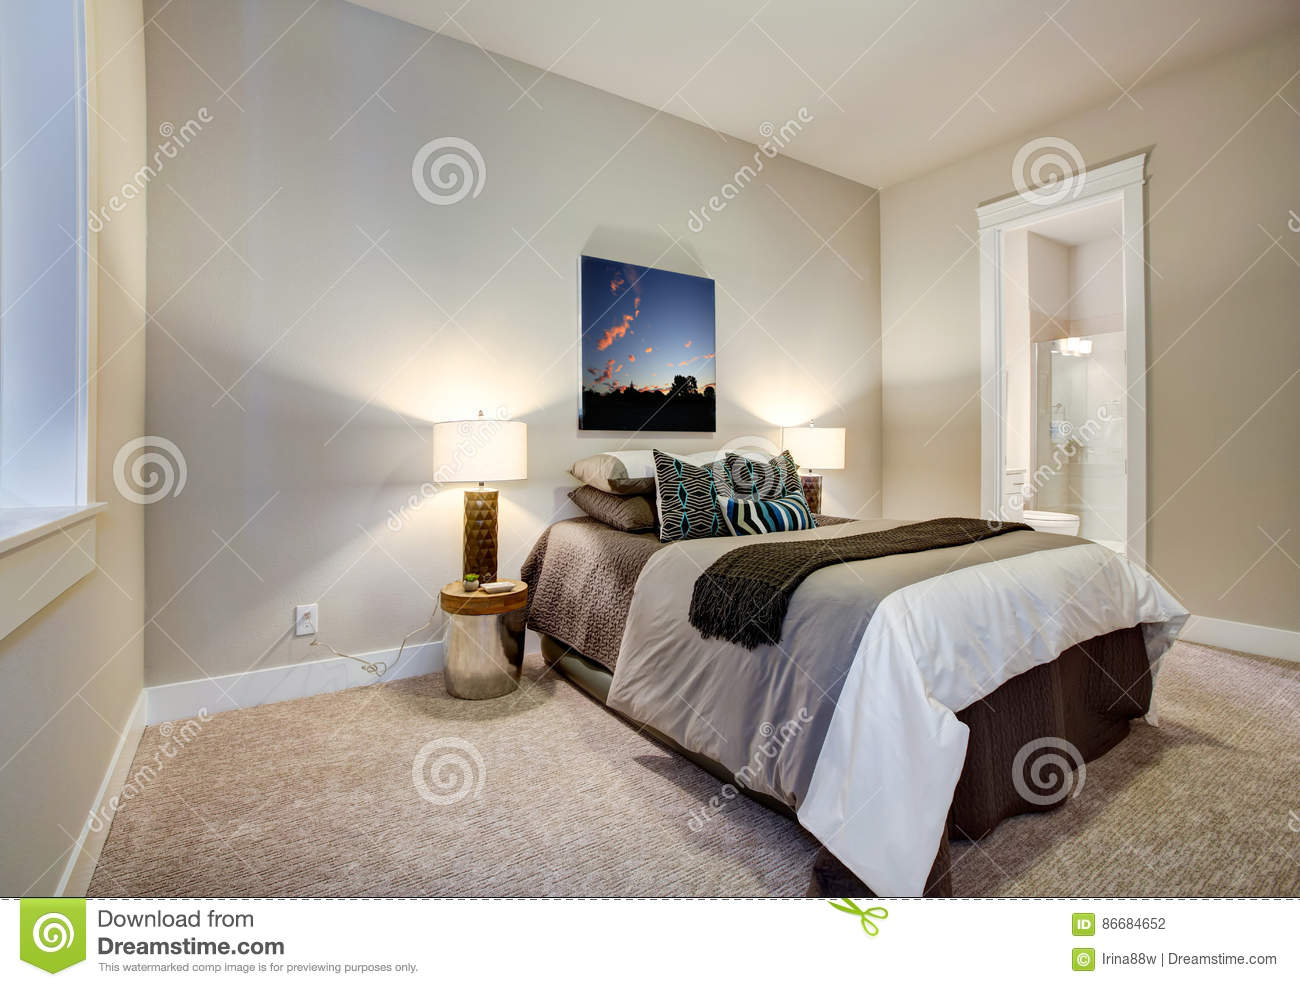 1 137 Neutral Bedroom Photos Free Royalty Free Stock Photos From Dreamstime